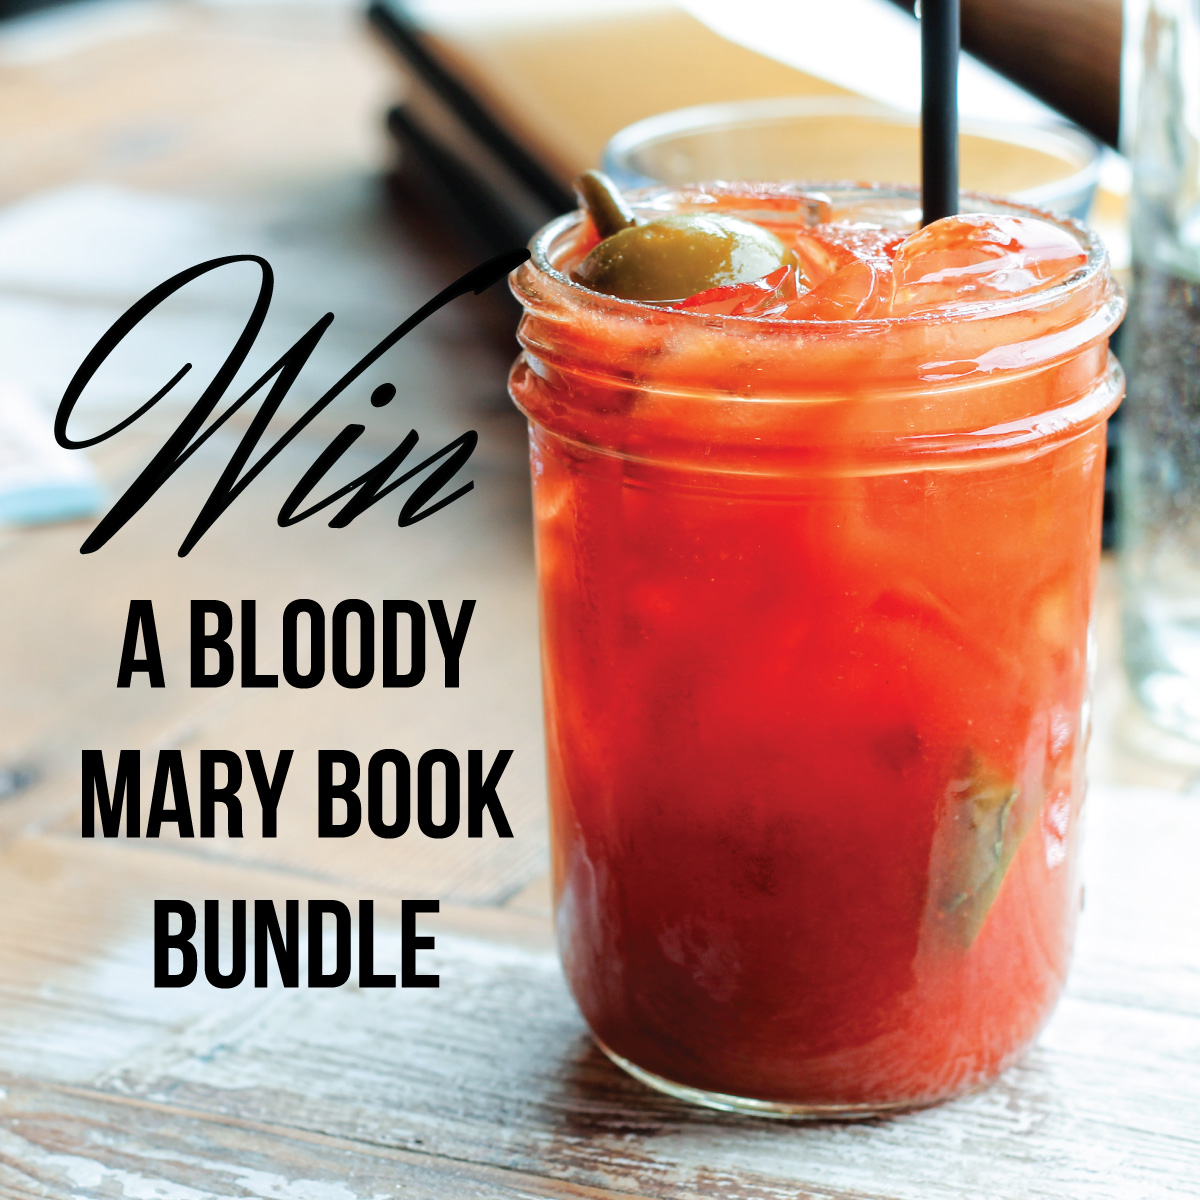 Bloody Mary Book Bundle Giveaway